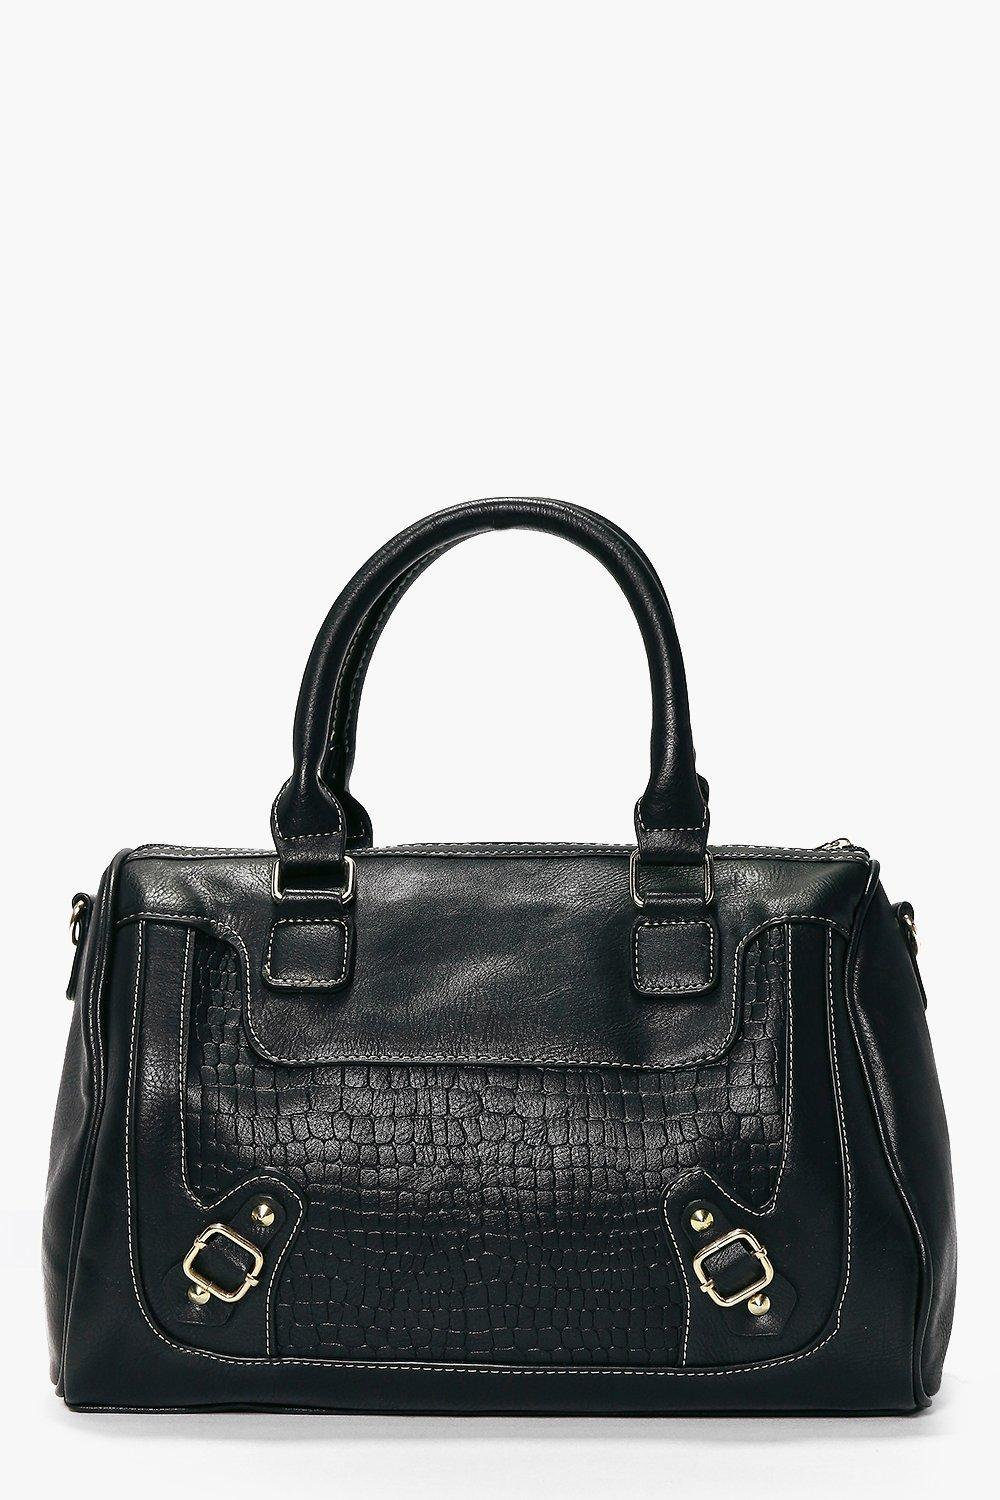 Structured Mock Croc Bowler Day Bag Black - predominant colour: black; occasions: casual, work, creative work; type of pattern: standard; style: bowling; length: handle; size: standard; material: faux leather; pattern: animal print; finish: plain; season: s/s 2016; wardrobe: highlight